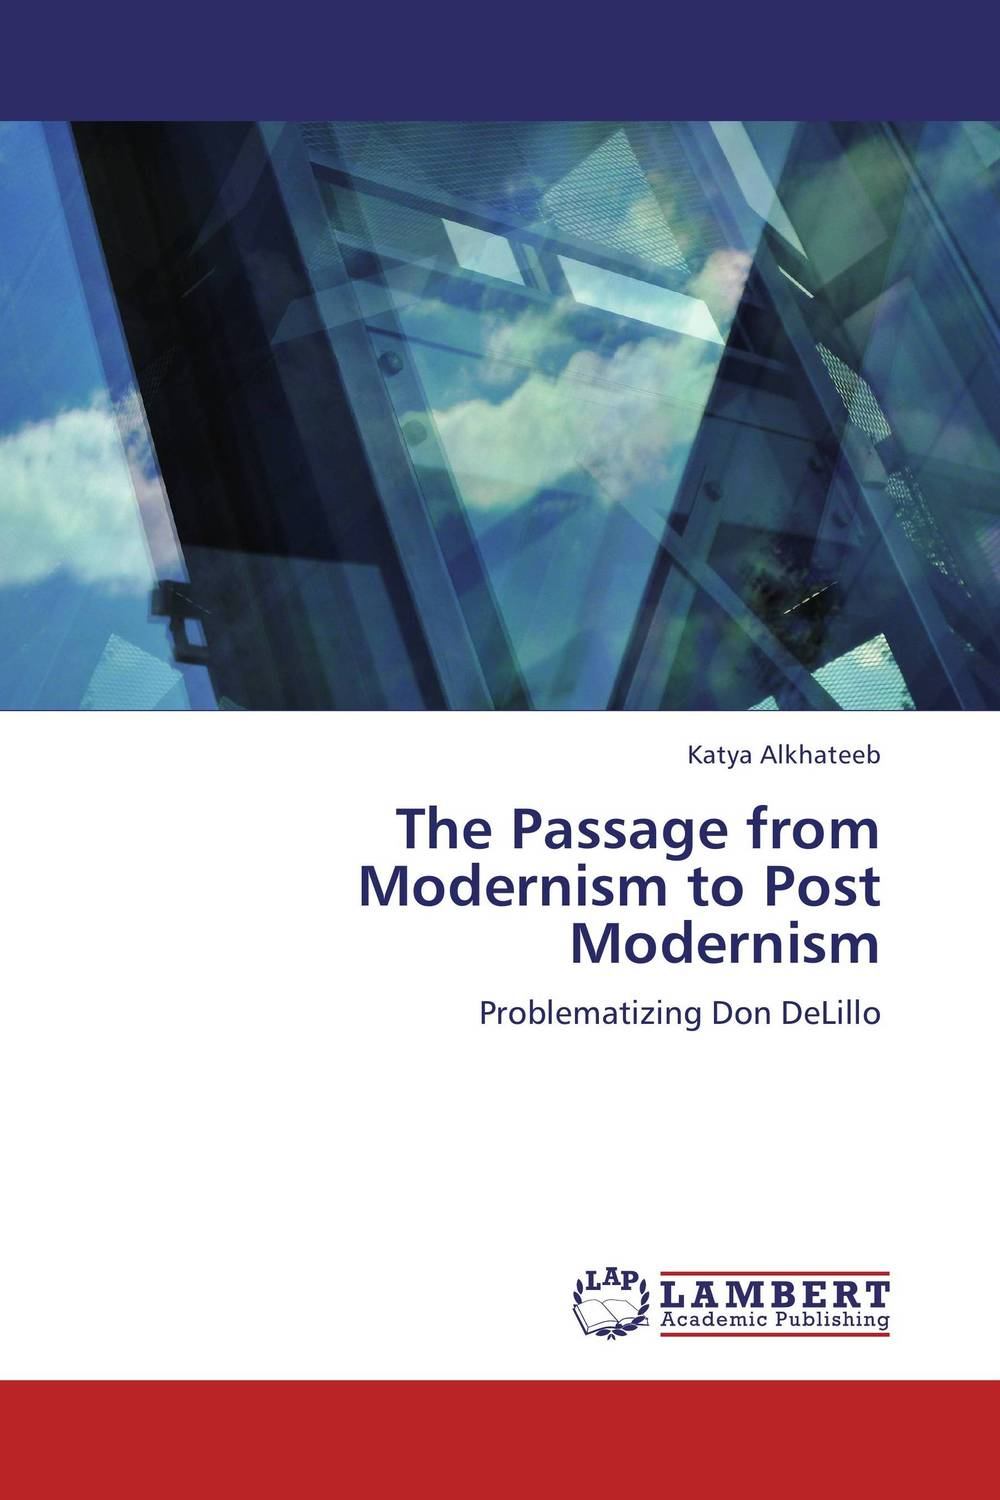 The Passage from Modernism to Post Modernism modernism